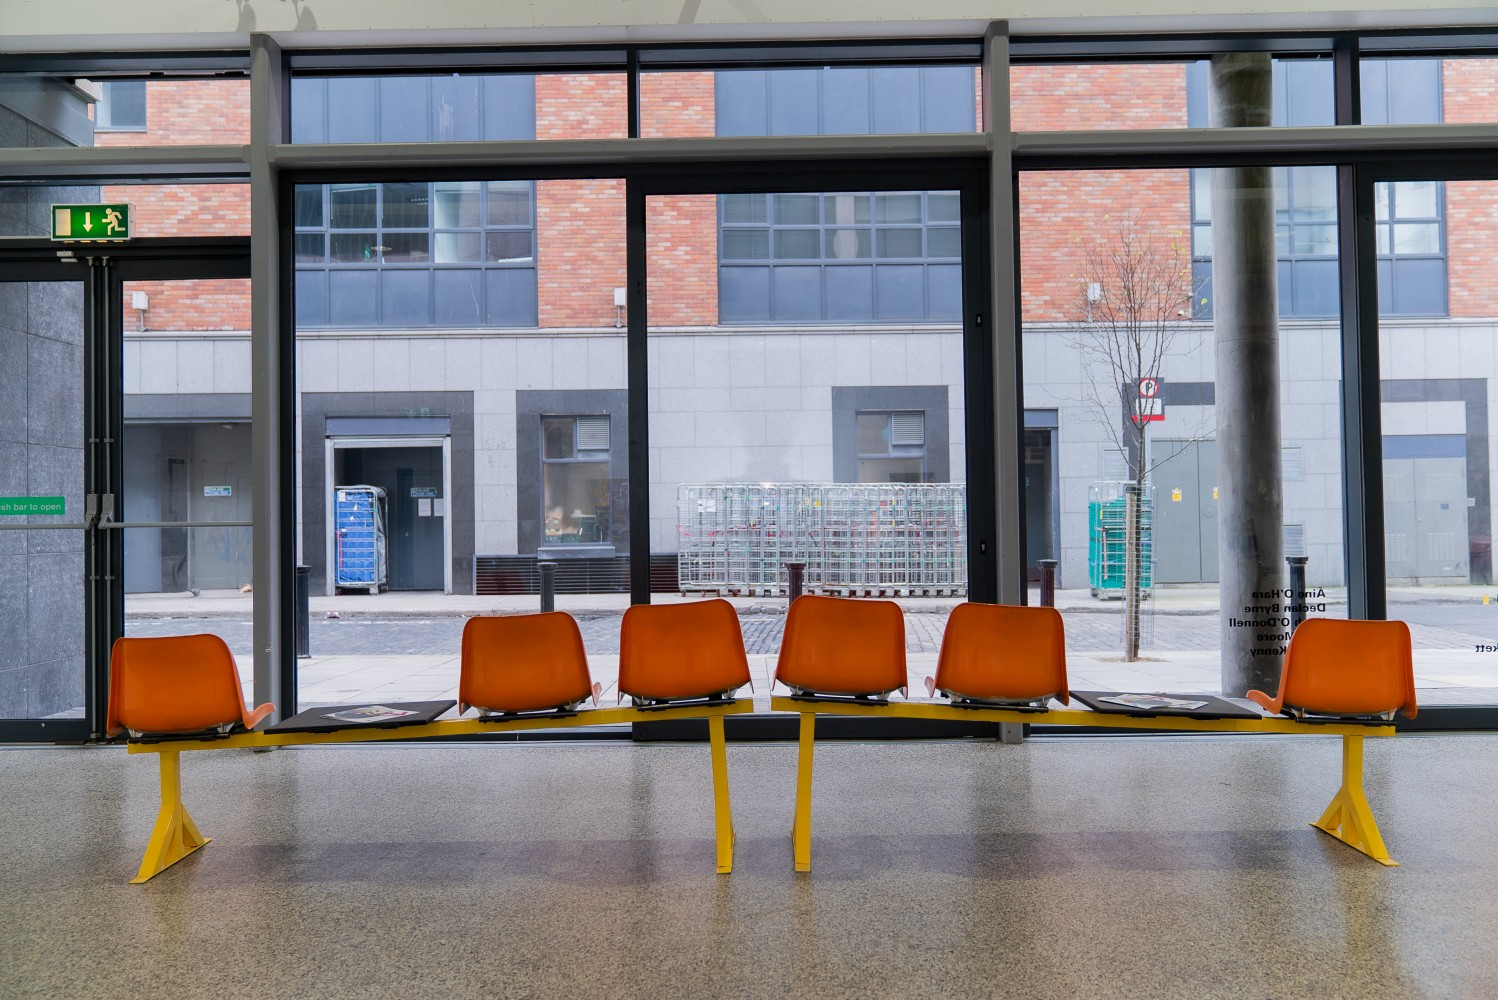 Two rows of three bright orange hospital chairs with yellow legs are seen for behind. The rows are both angled upwards so it would feel uneven if you sat on them. They are set up in front of a large window that looks out onto the street. The floor reflects the chairs slightly, it's grey with a speckled effect.